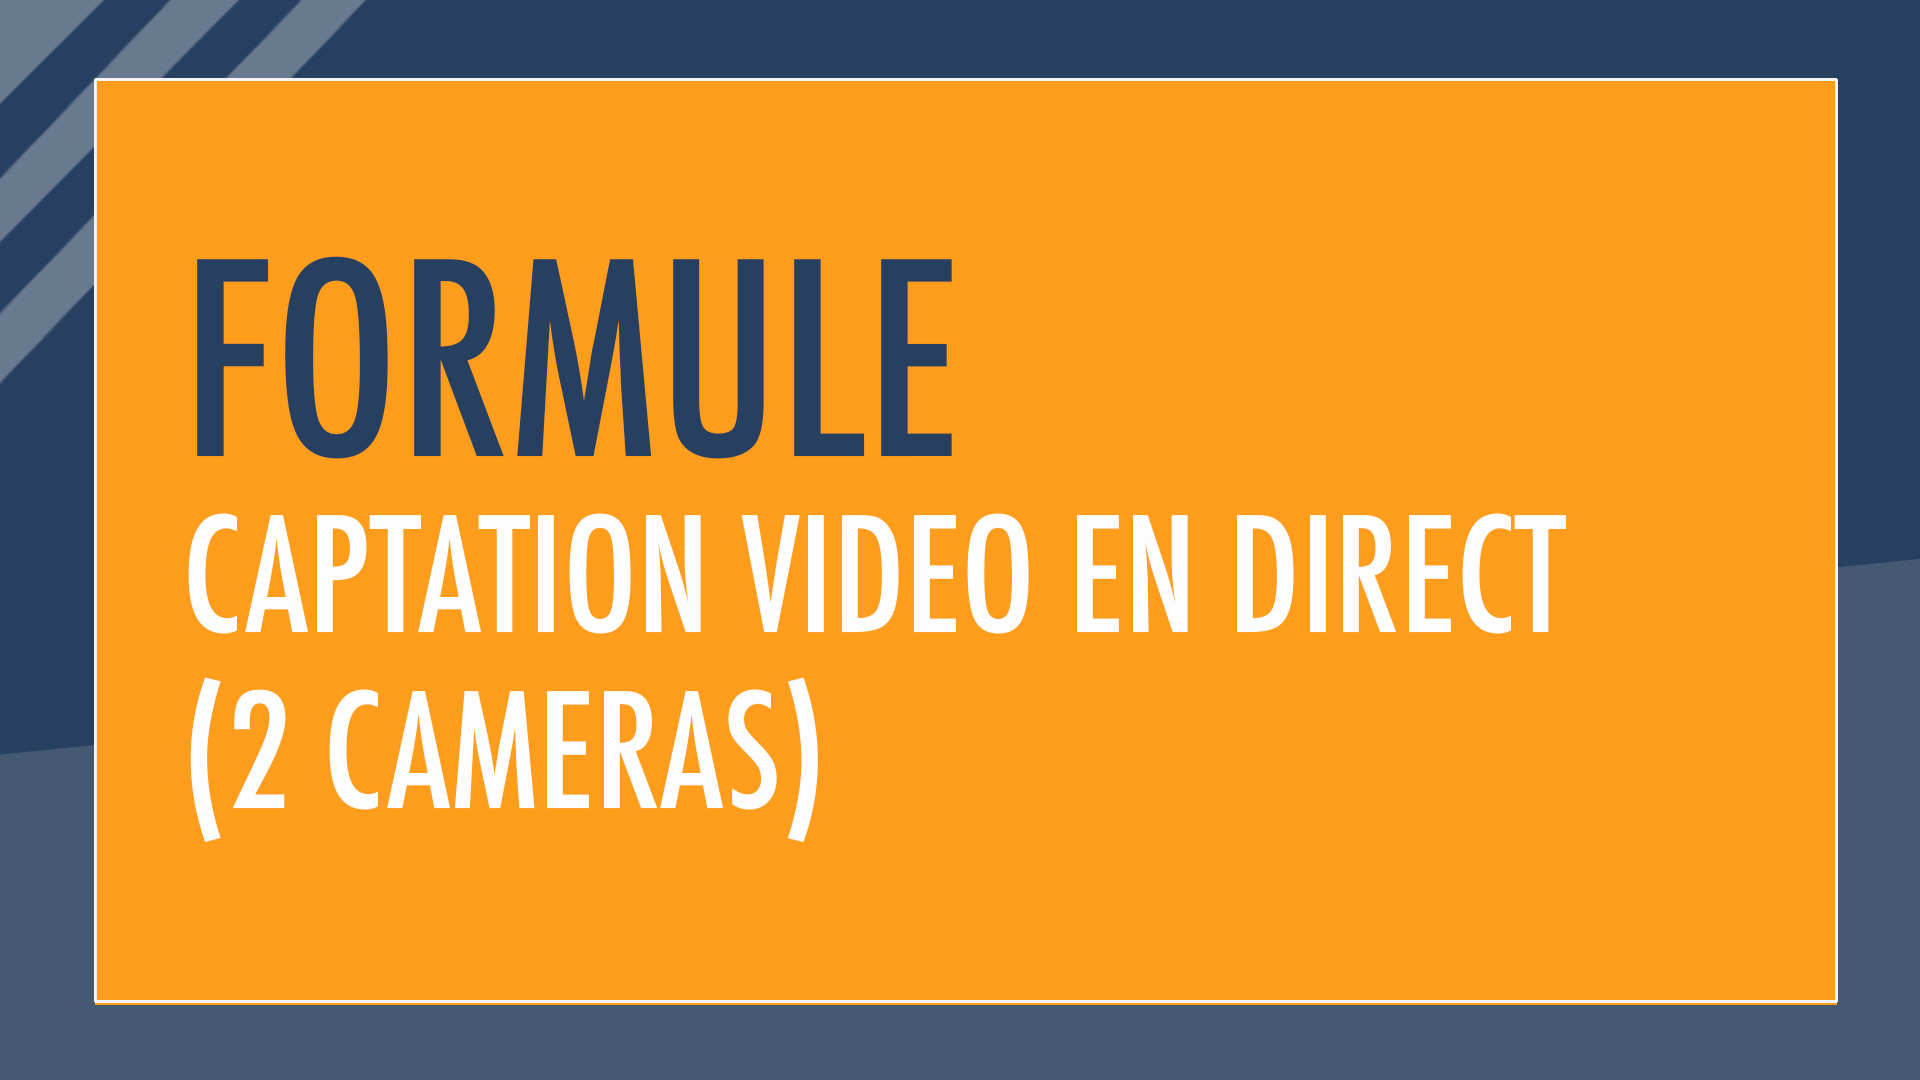 Formule : Captation video en direct (2 caméras)